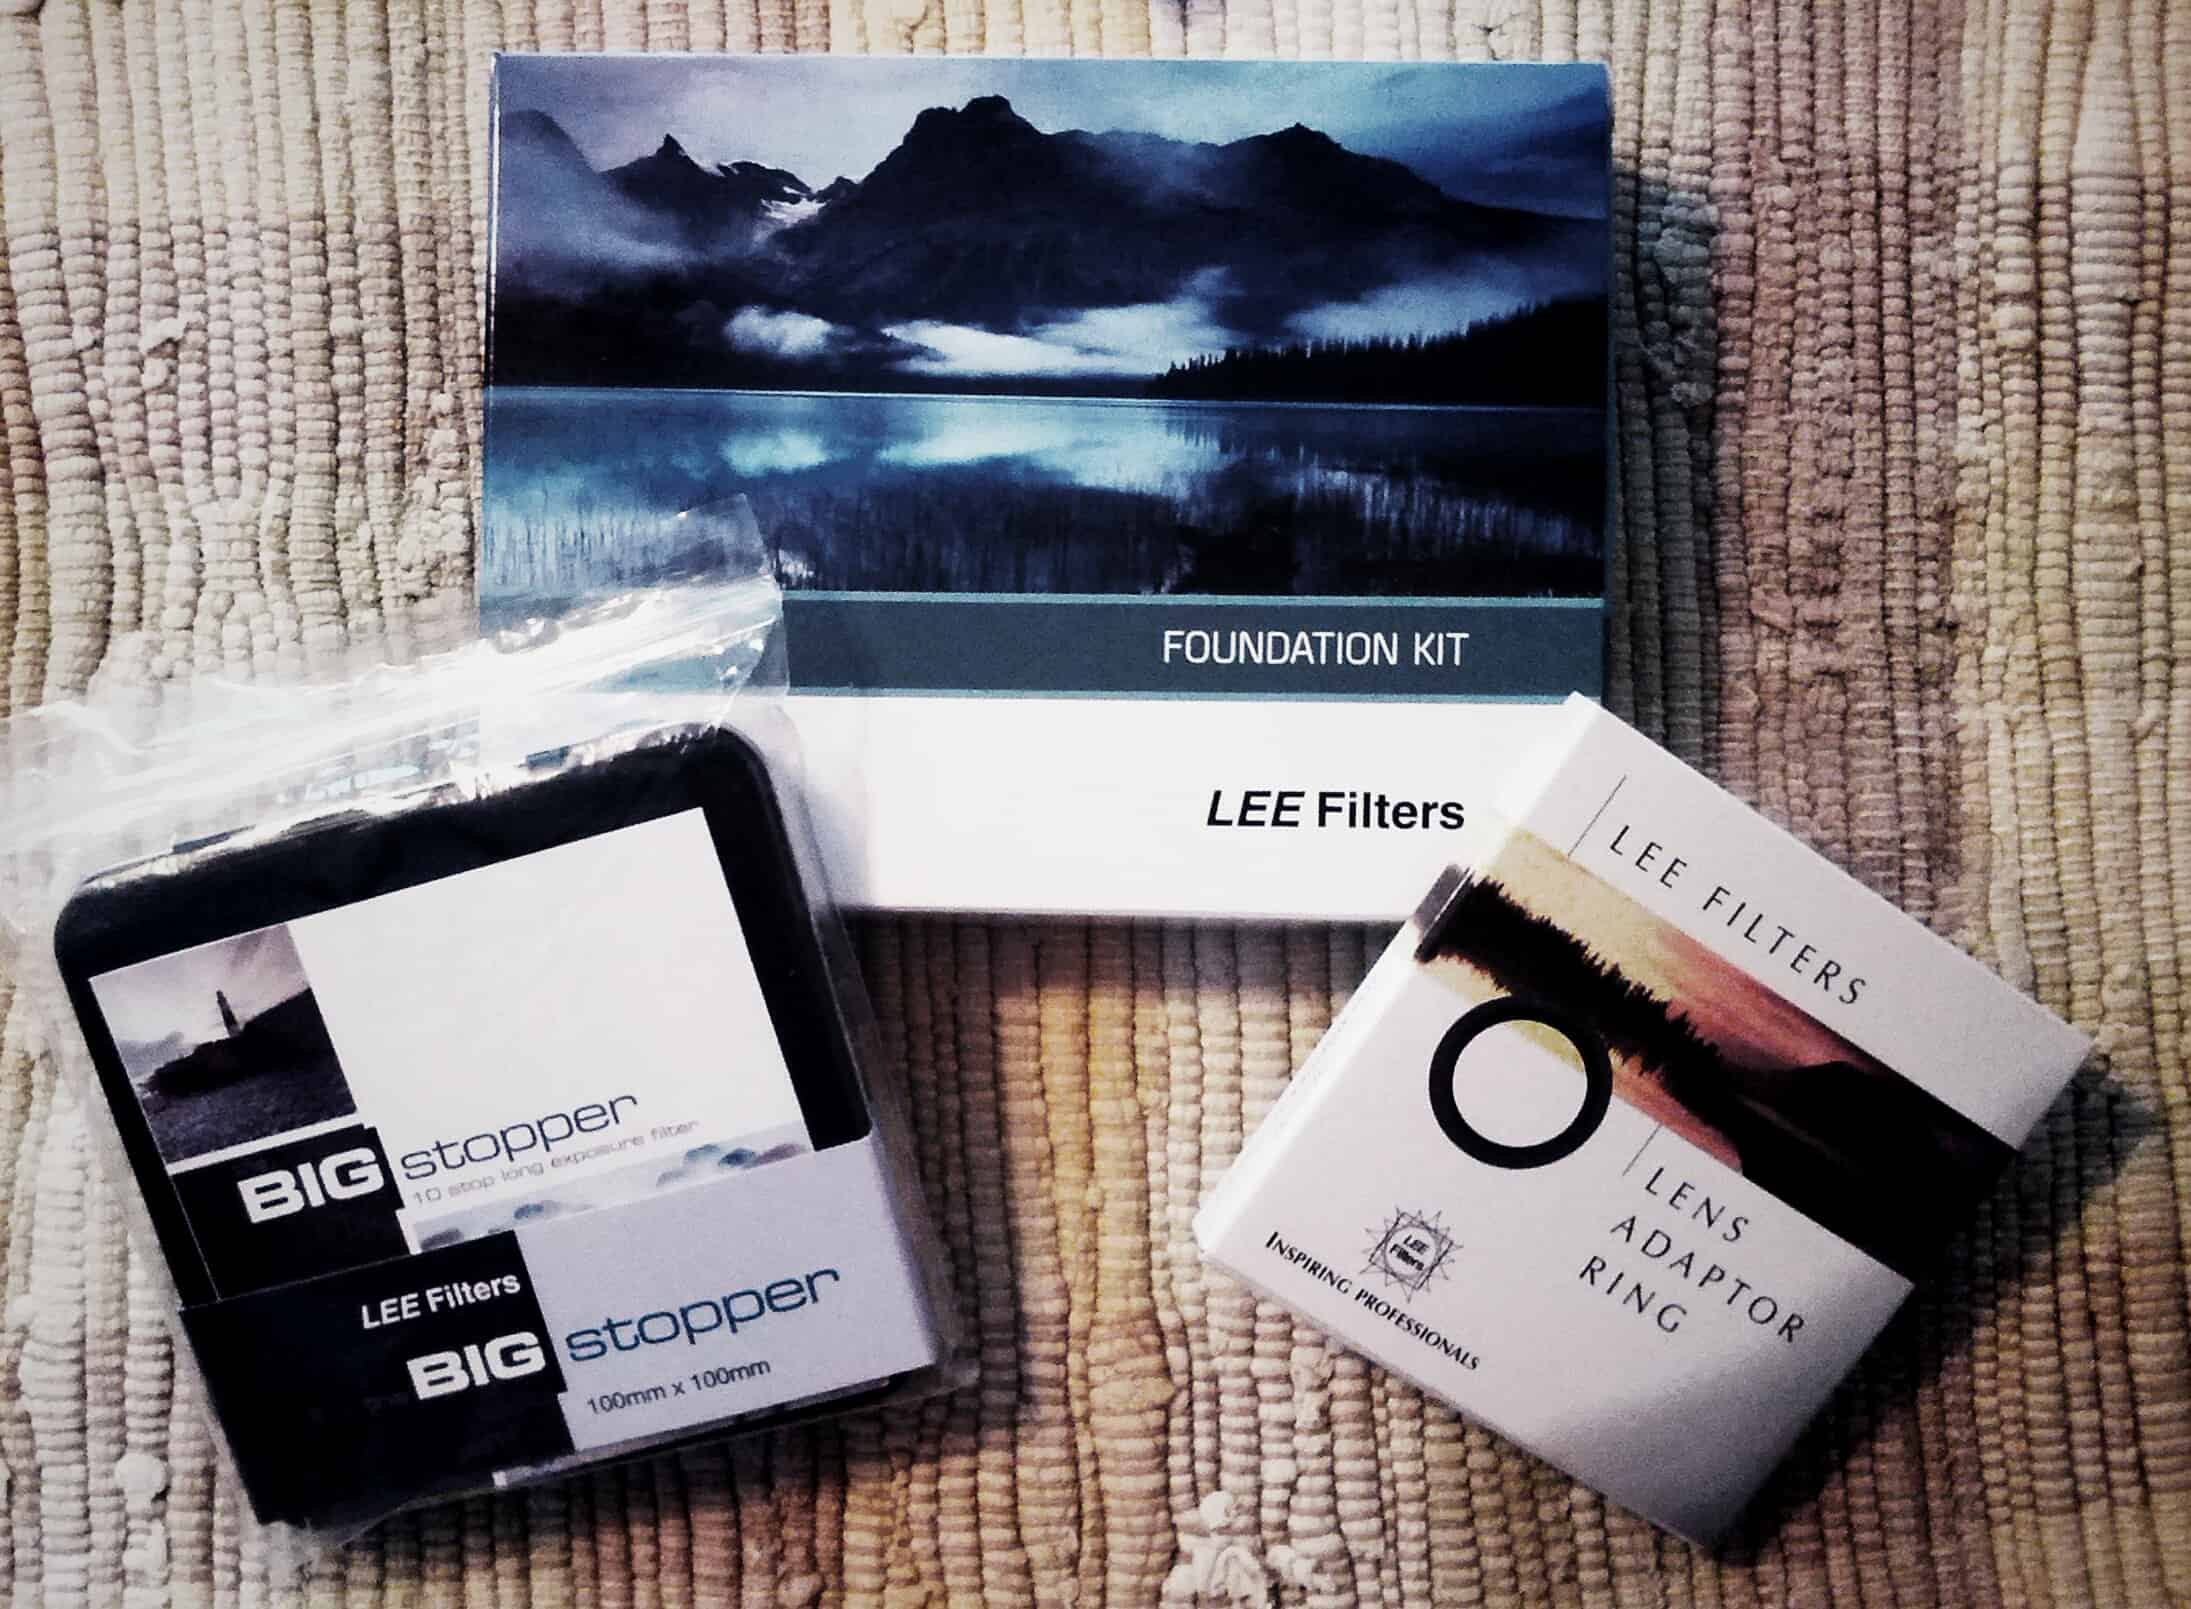 The Lee Big Stopper: A Story Review